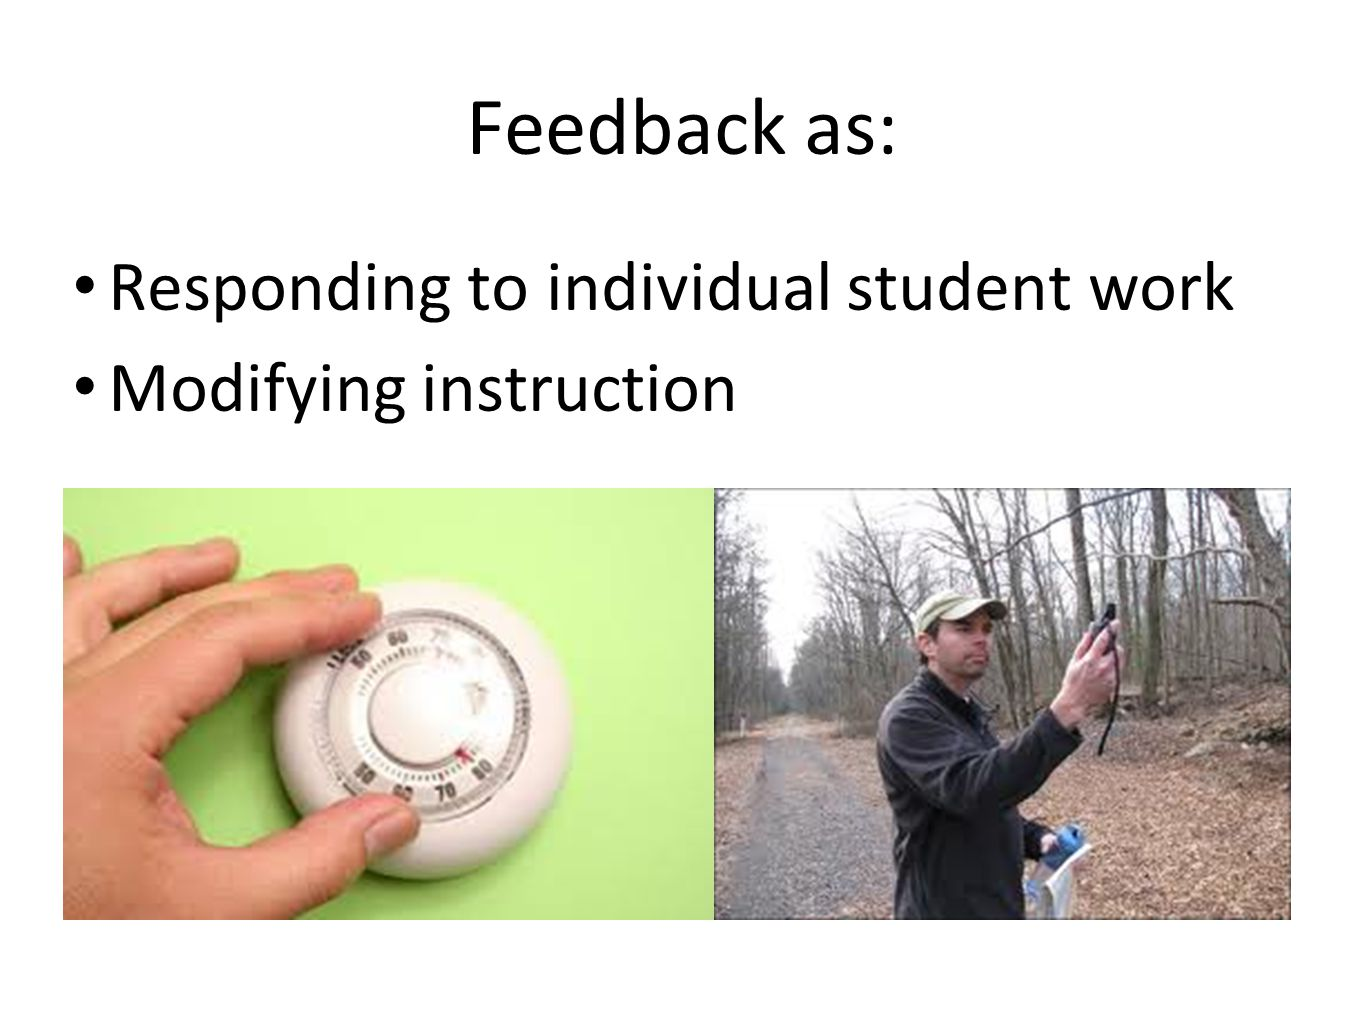 Feedback as: Responding to individual student work